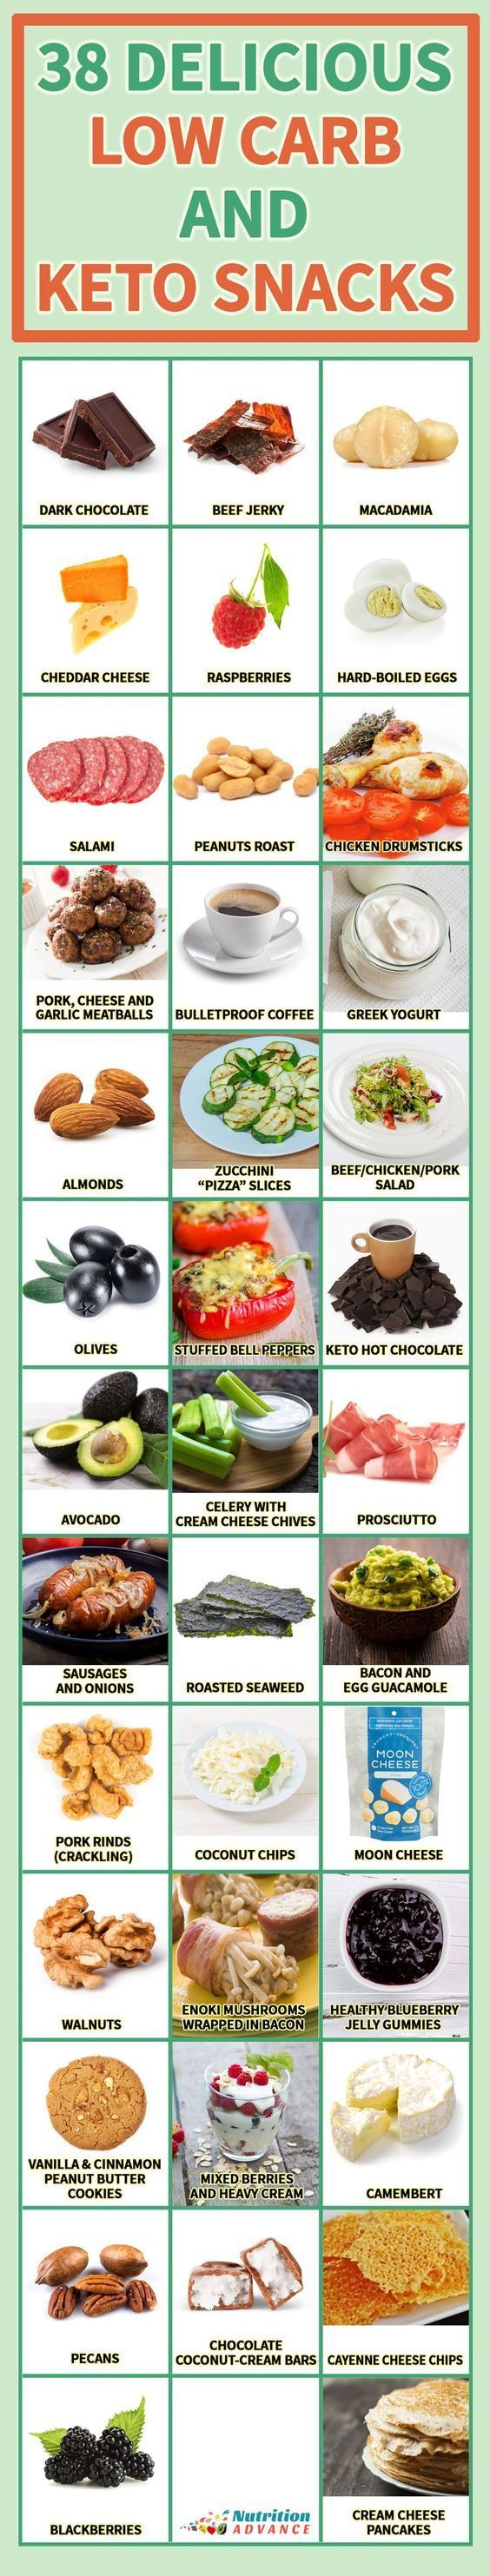 38 Delicious Low Carb and Keto Snacks - Looking for inspiration? Then here's a list of 38 delicious keto snacks, recipes, foods, and ideas. All of them are ready in less than 15 minutes! See the article at: http://nutritionadvance.com/low-carb-keto-snacks http://www.weightlossjumpstar.com/21-days-to-make-a-habit/